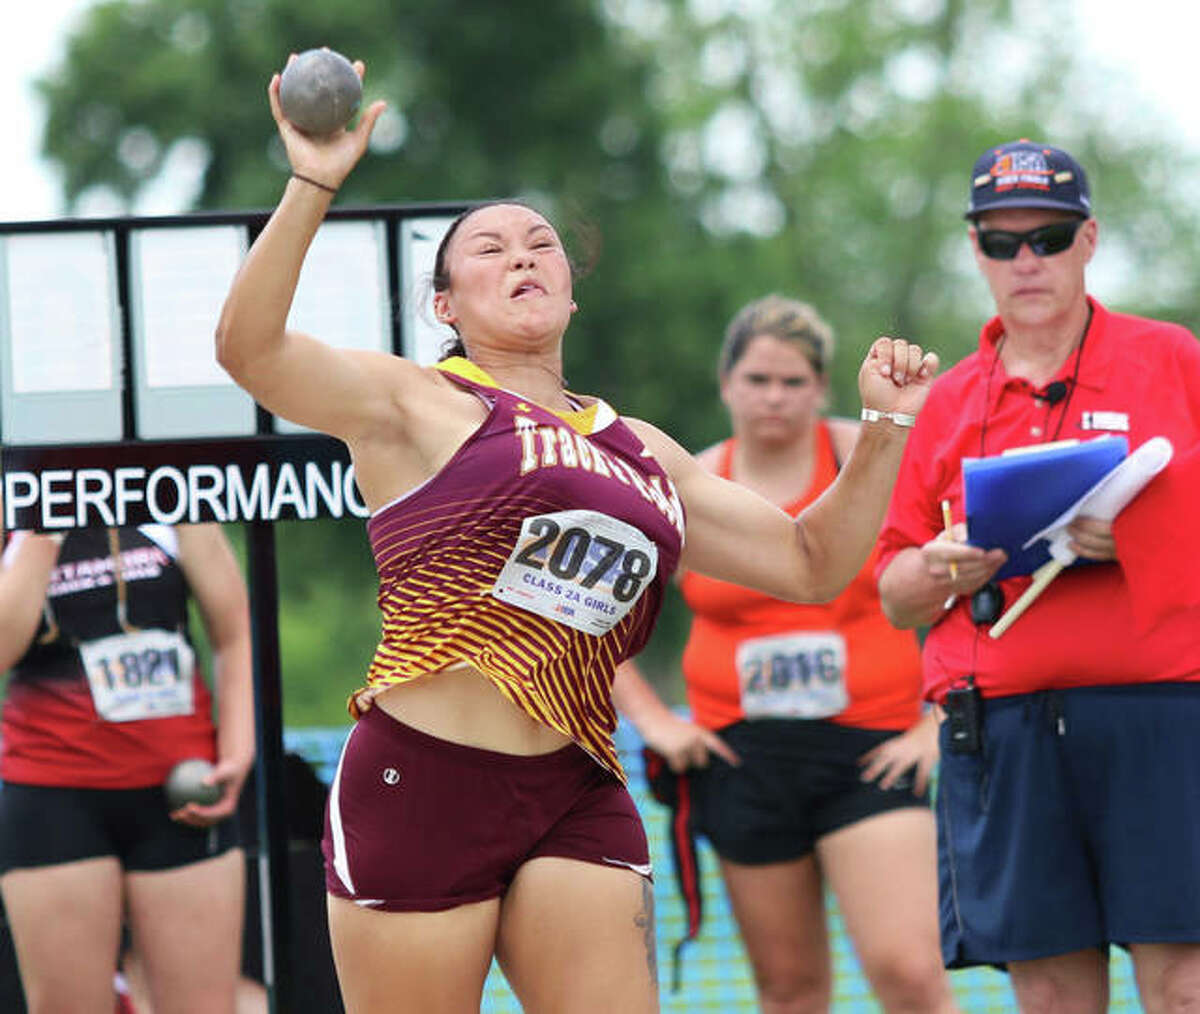 EA-WR senior Jayden Ulrich gets off her winning throw of 14.84 meters in her first attempt in the shot put at the Class 2A state meet Friday at O'Brien Stadium in Charleston. Ulrich won state championships in both the shot and discus.